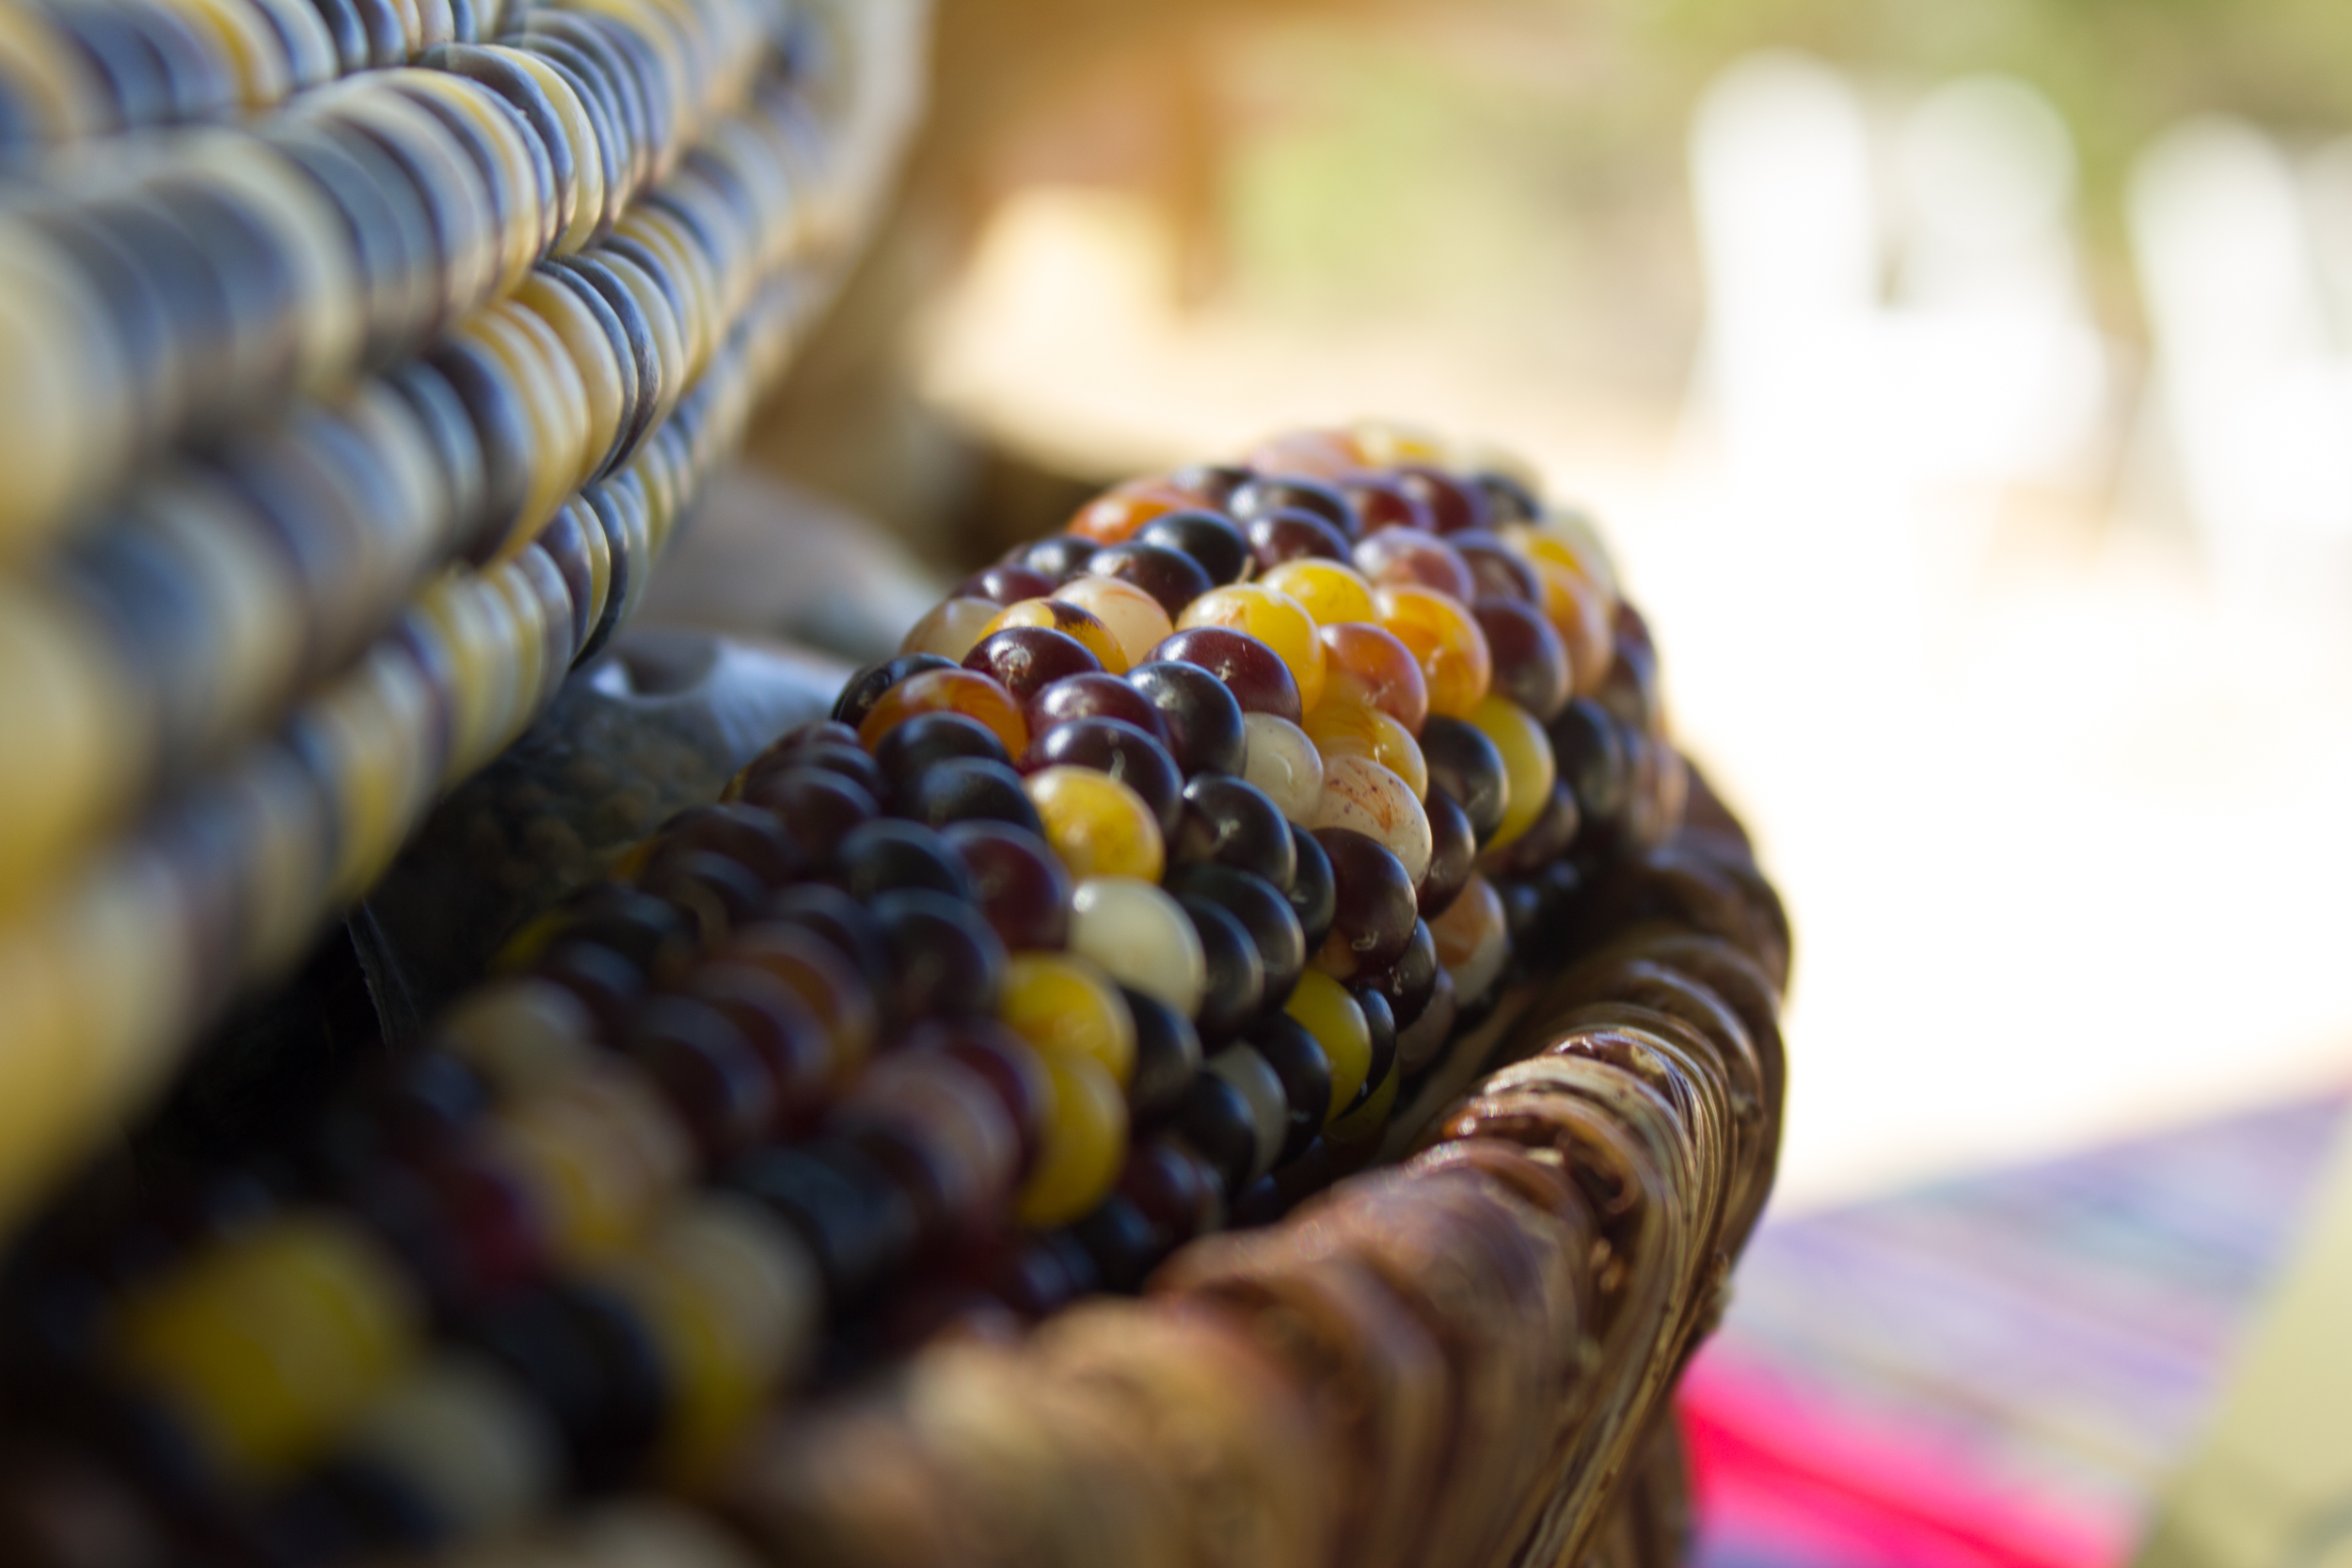 Multicolored ceremonial corn sits in a place of honor inside a handwoven basket during a harvest celebration